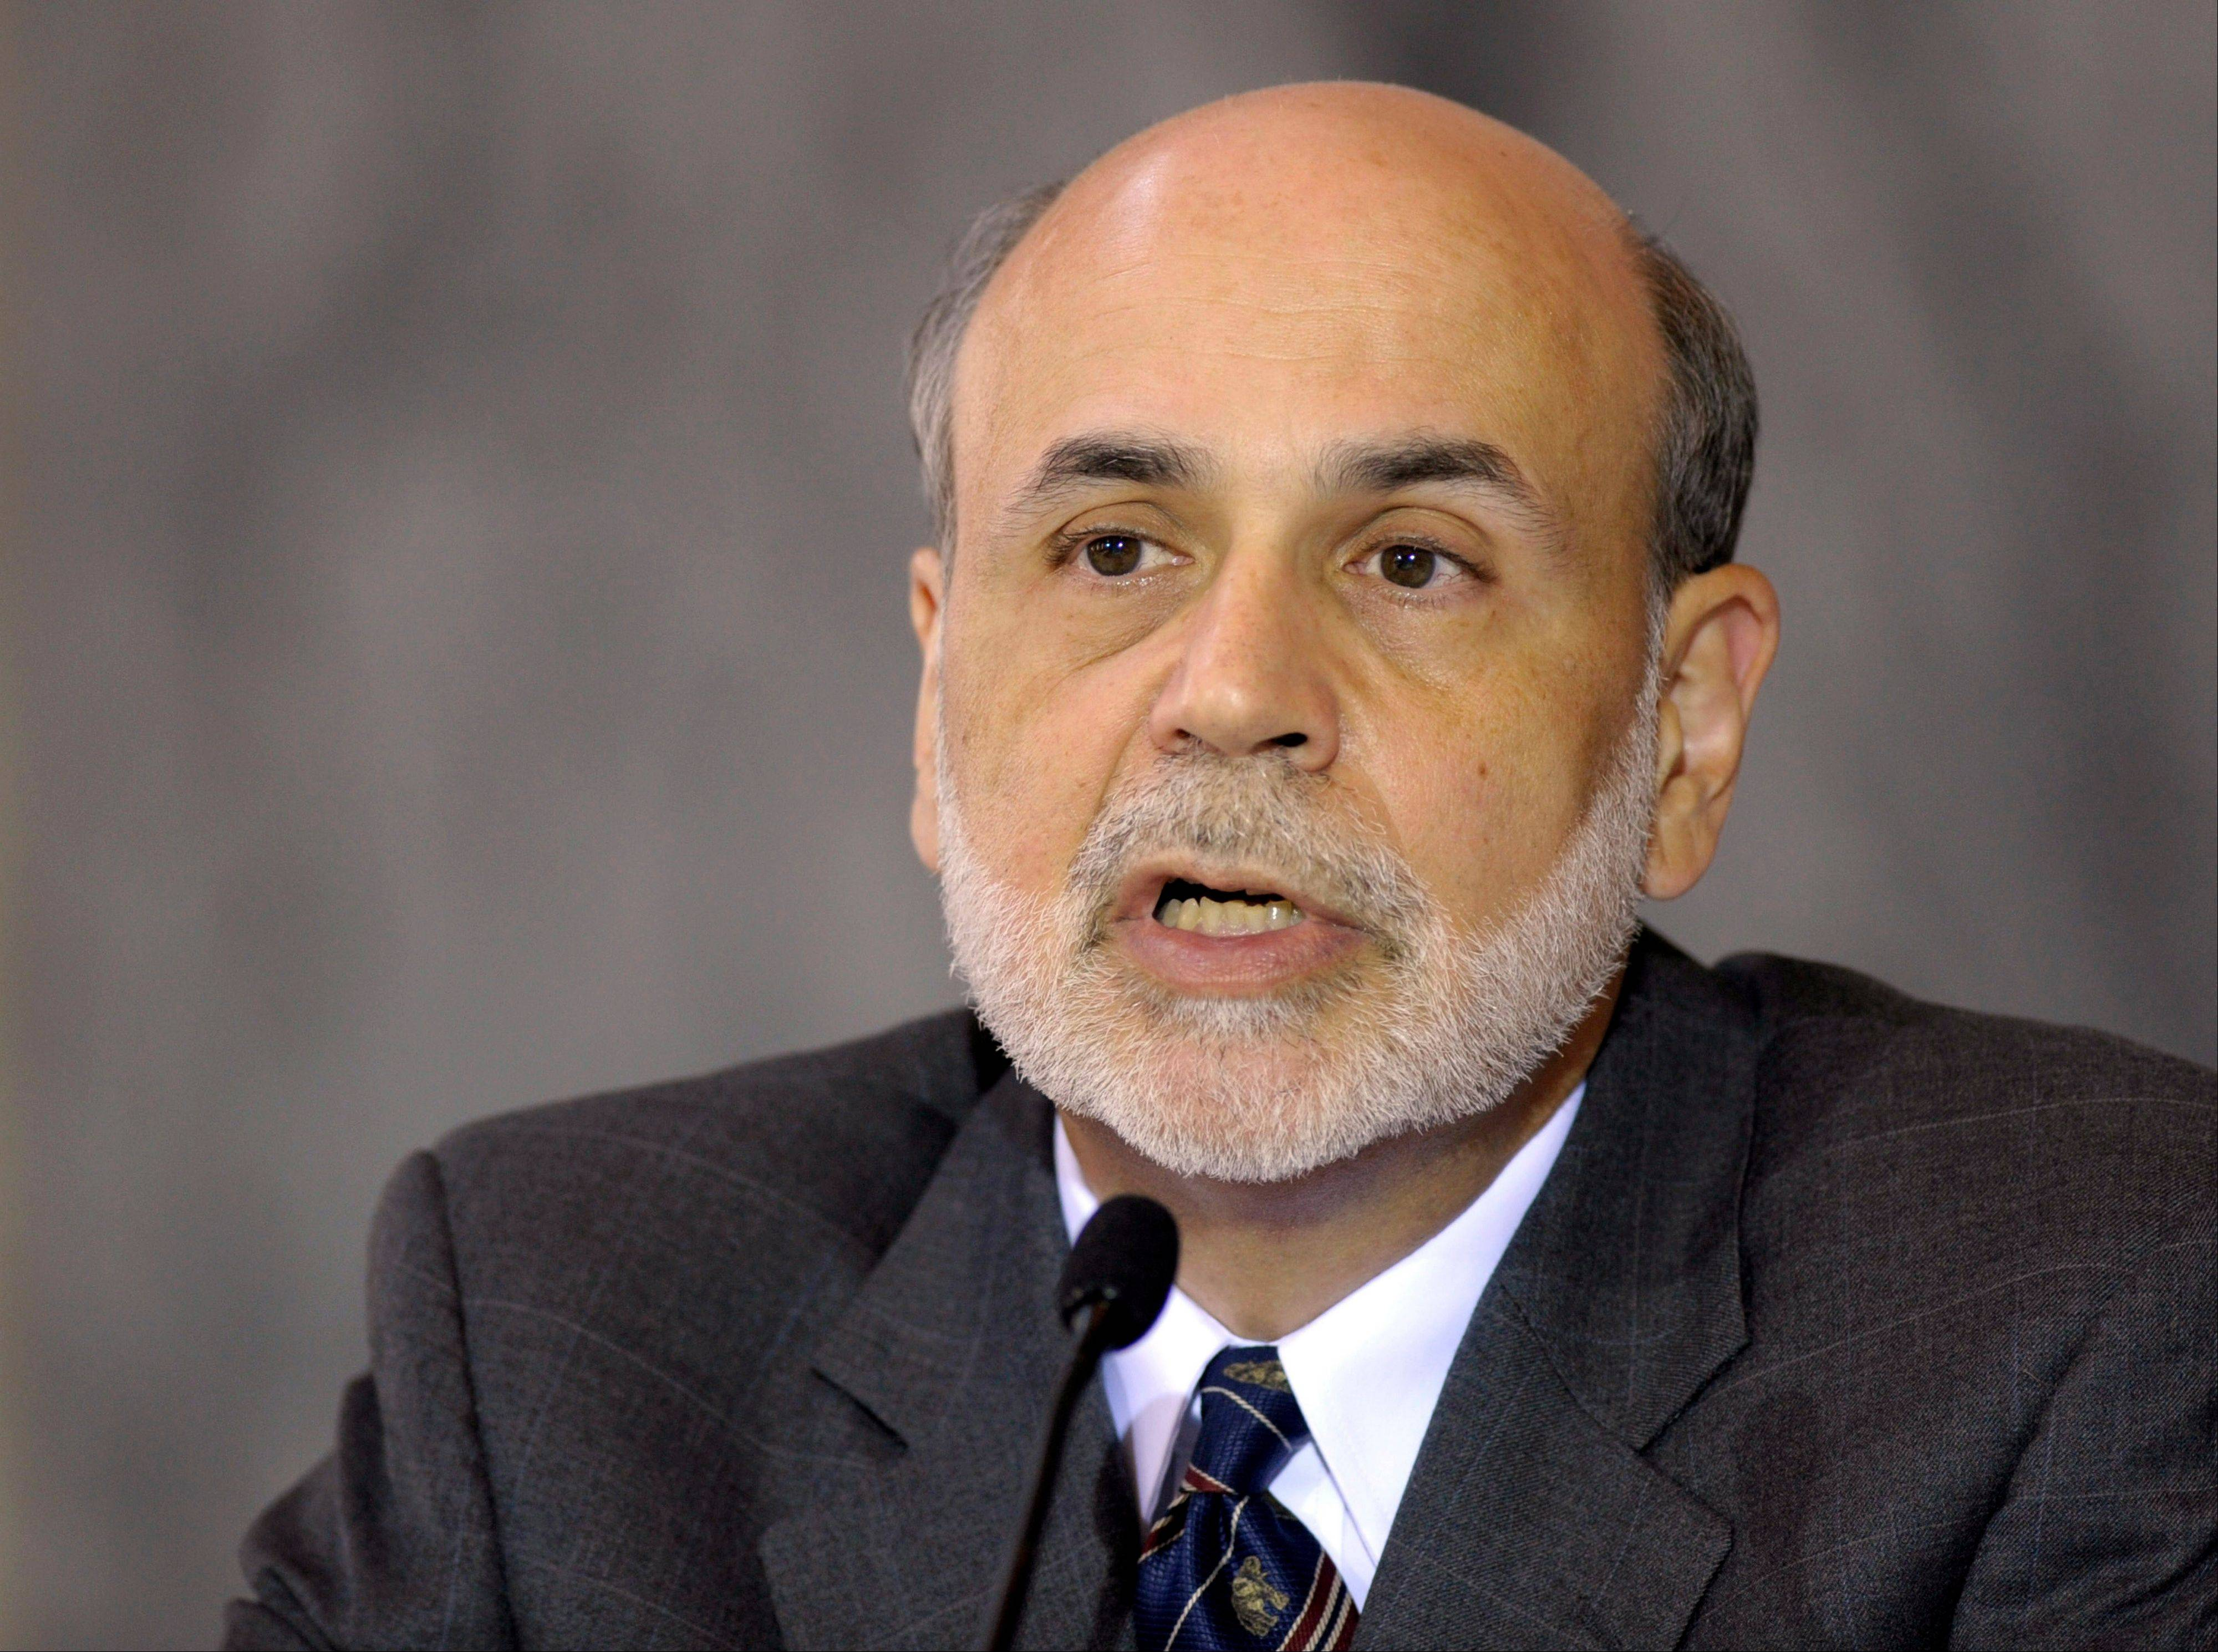 Federal Reserve Board Chairman Ben Bernanke speaks at the Financial Stability Council meeting Monday on the one-year anniversary of the Dodd-Frank Reform and Consumer Protection Act.